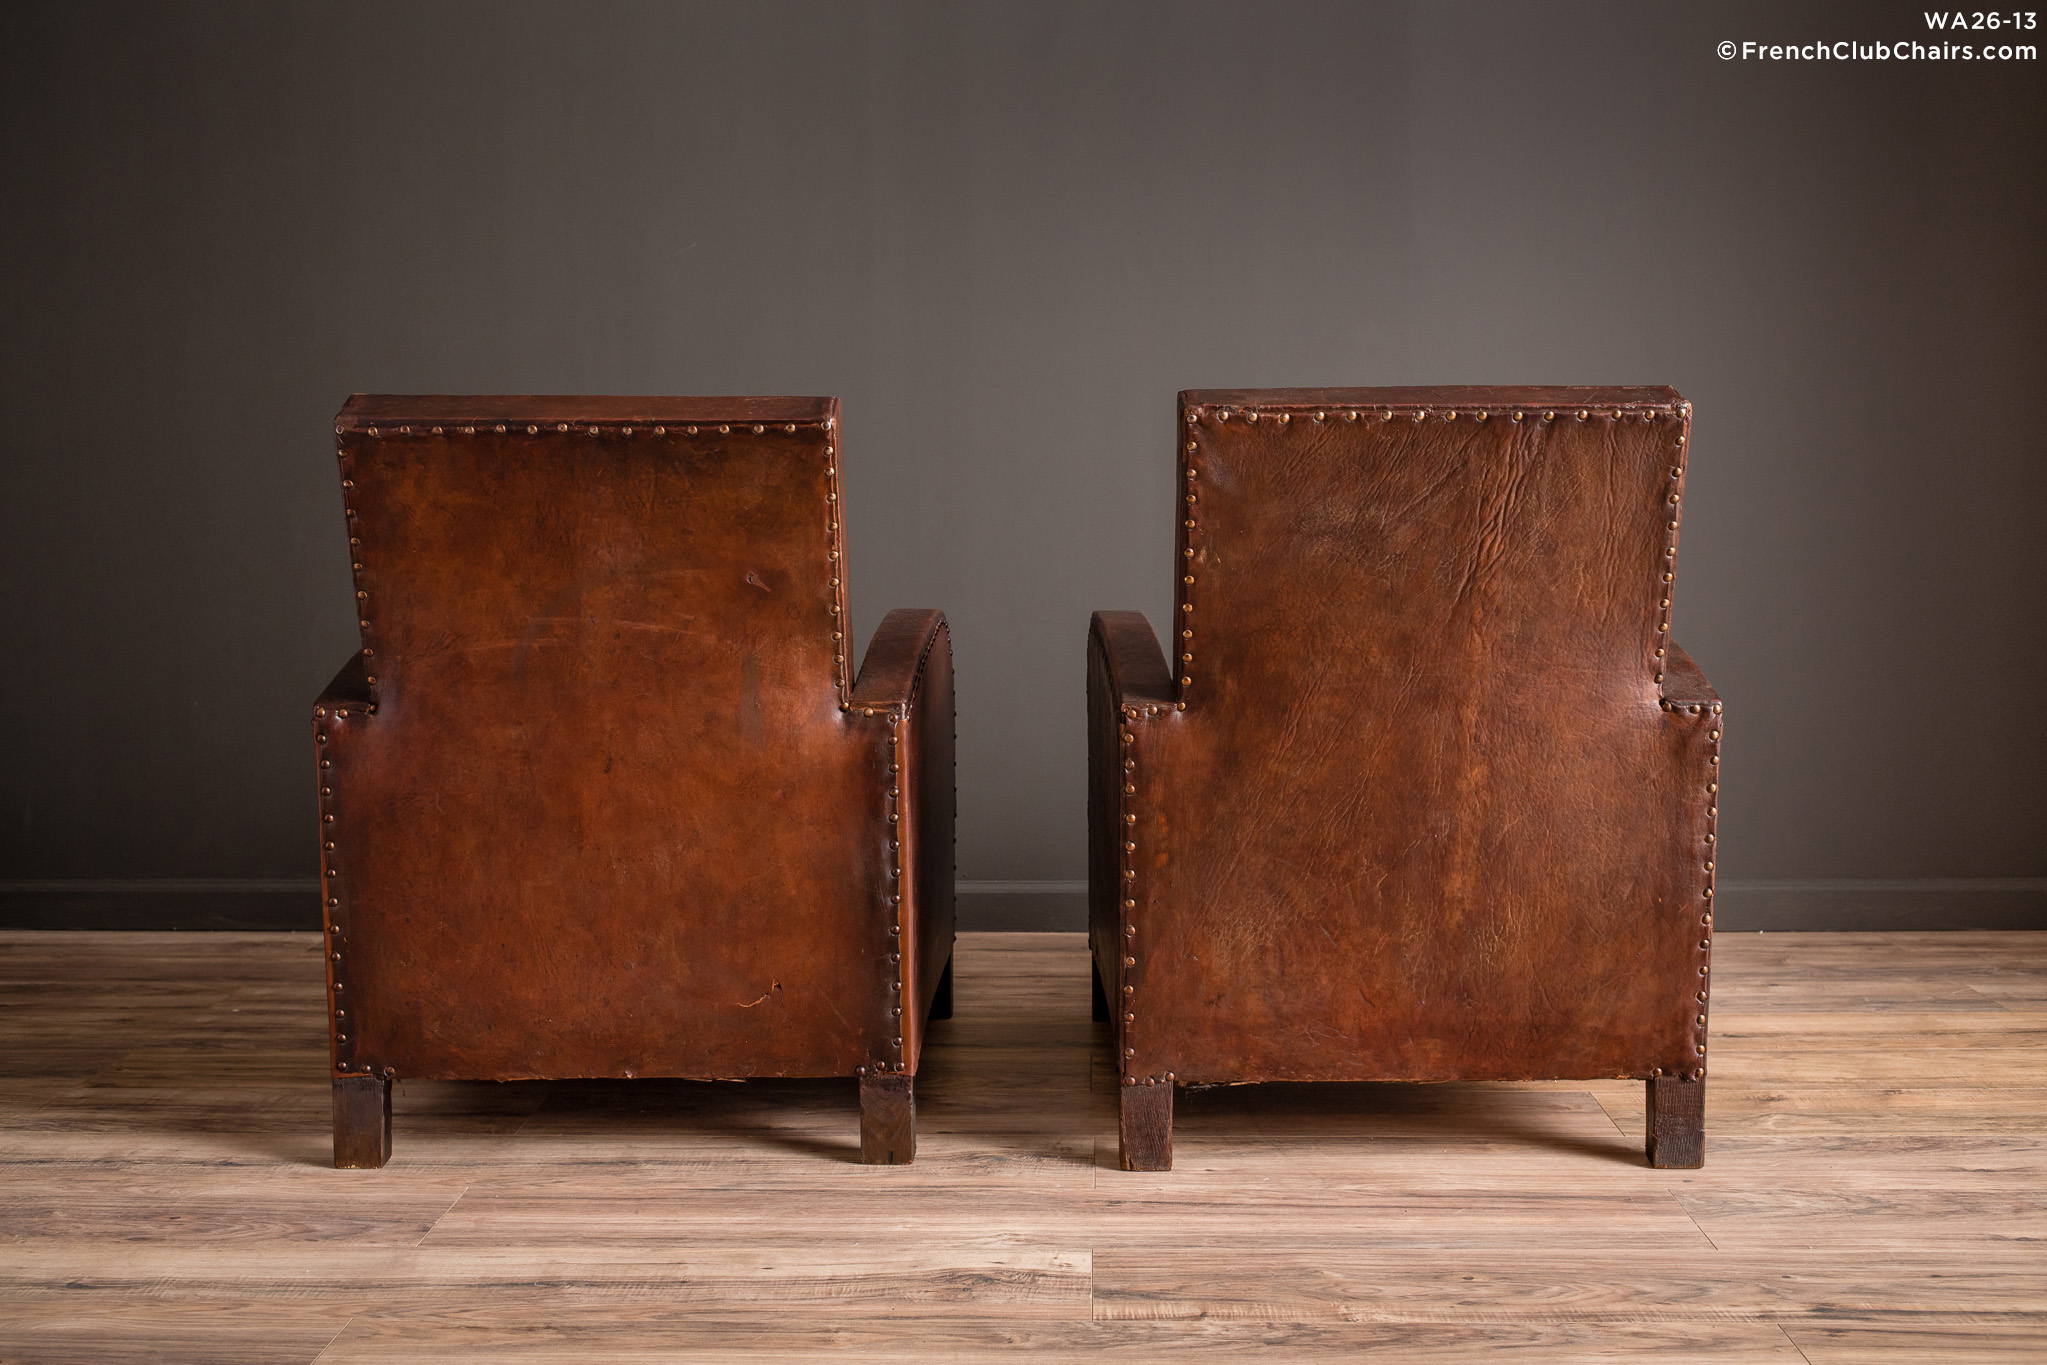 WA_26-13_Brest_Square_Pair_R_2BK-v01-williams-antiks-leather-french-club-chair-wa_fcccom